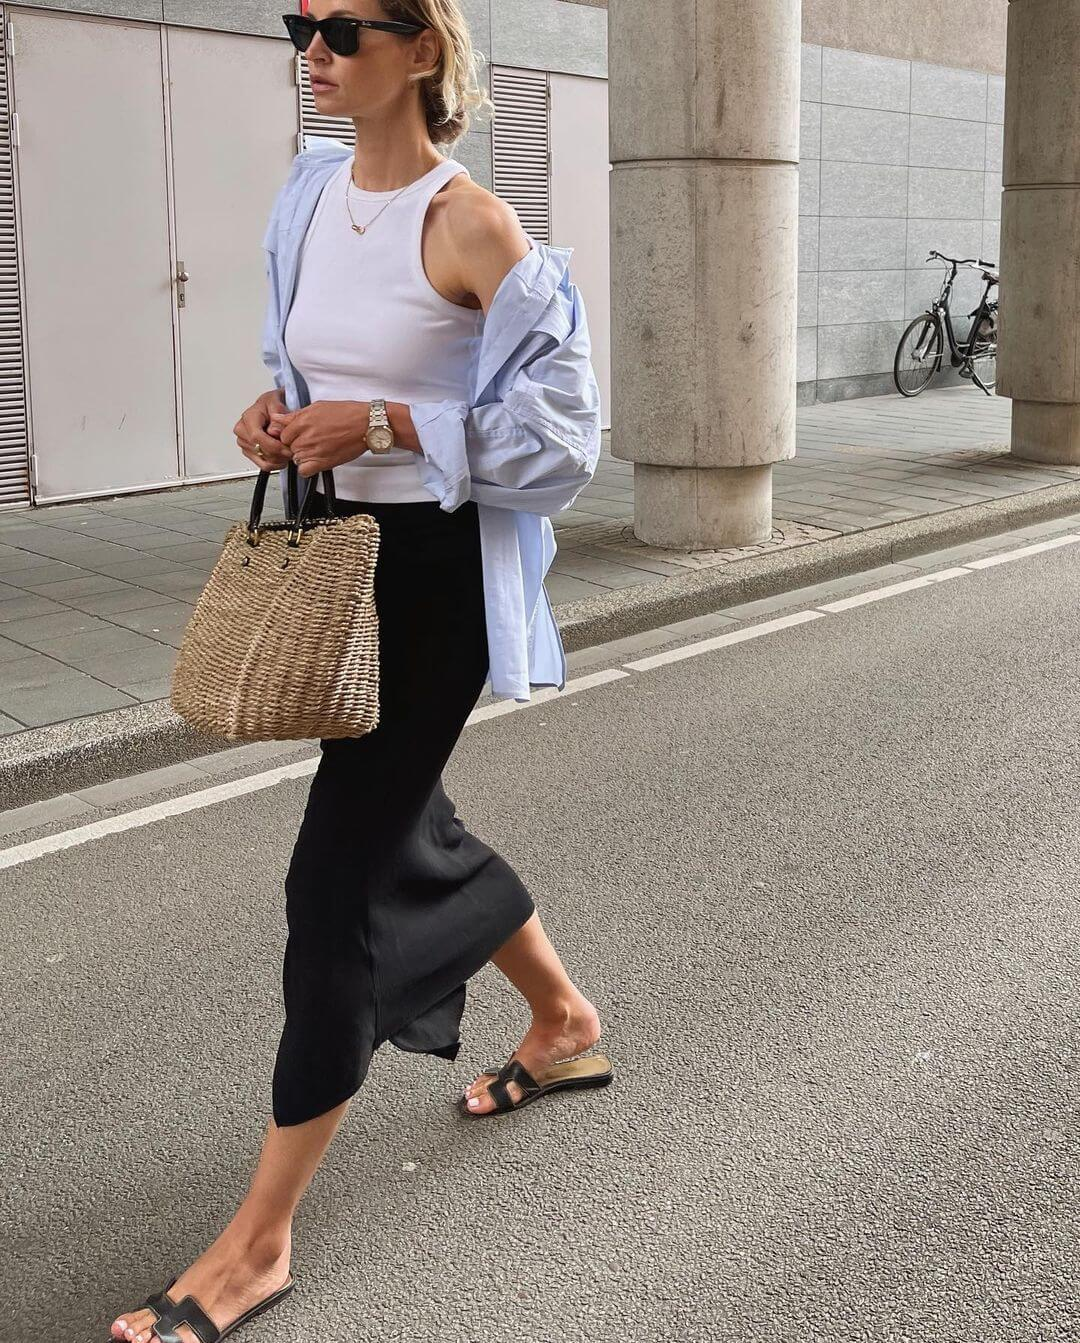 10 Classic Summer Outfits That Will Never Go Out of Style